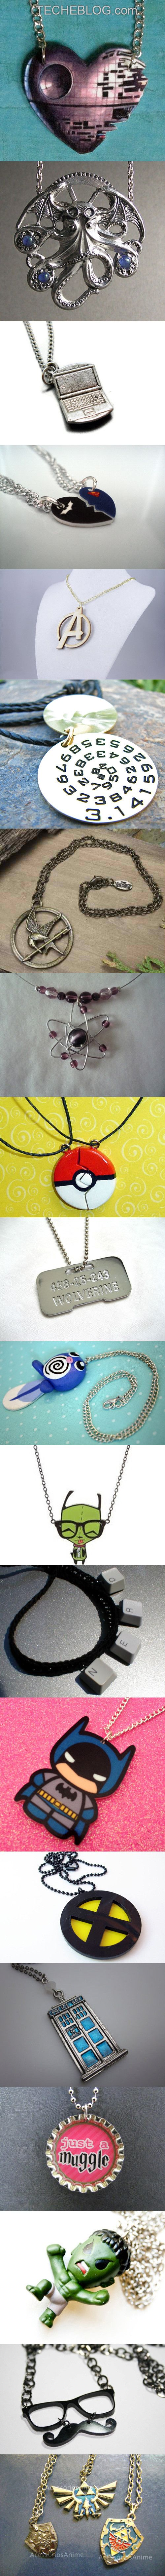 A collection of 20 cool and creative necklaces for geeks. I want the Avengers one.